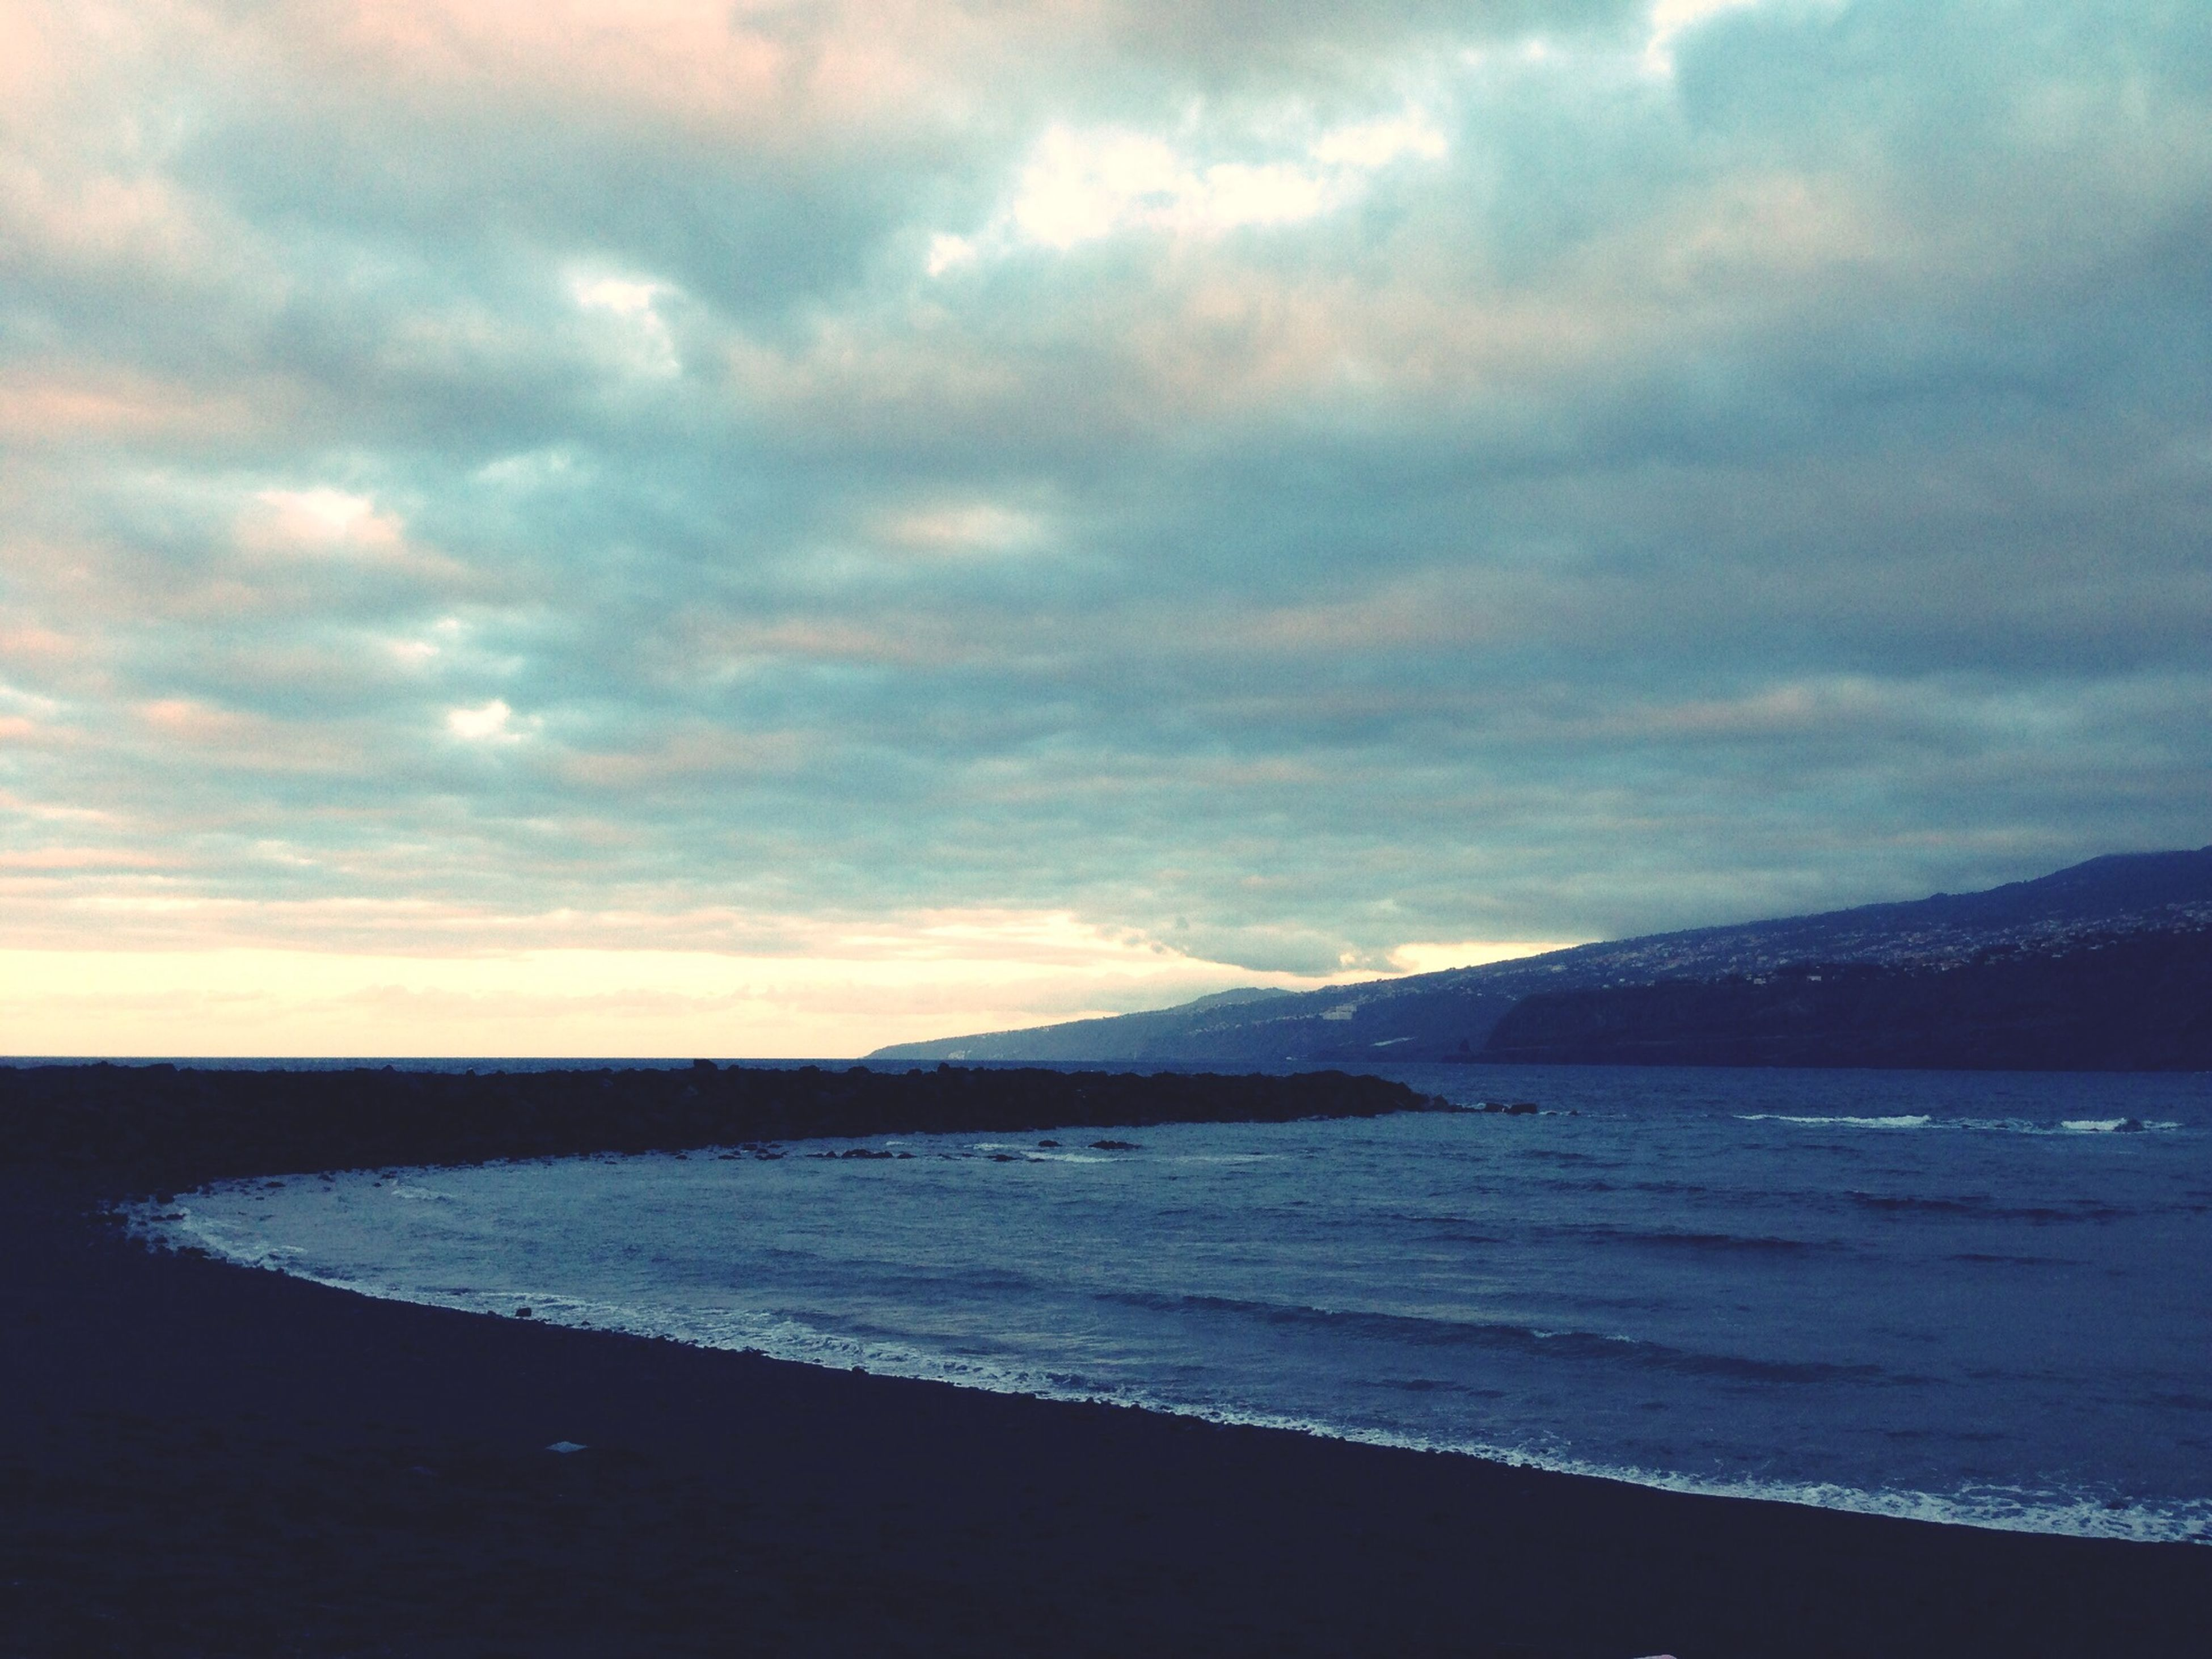 sea, water, sky, scenics, tranquil scene, tranquility, beauty in nature, cloud - sky, beach, cloudy, mountain, nature, shore, cloud, idyllic, horizon over water, coastline, dusk, sunset, weather